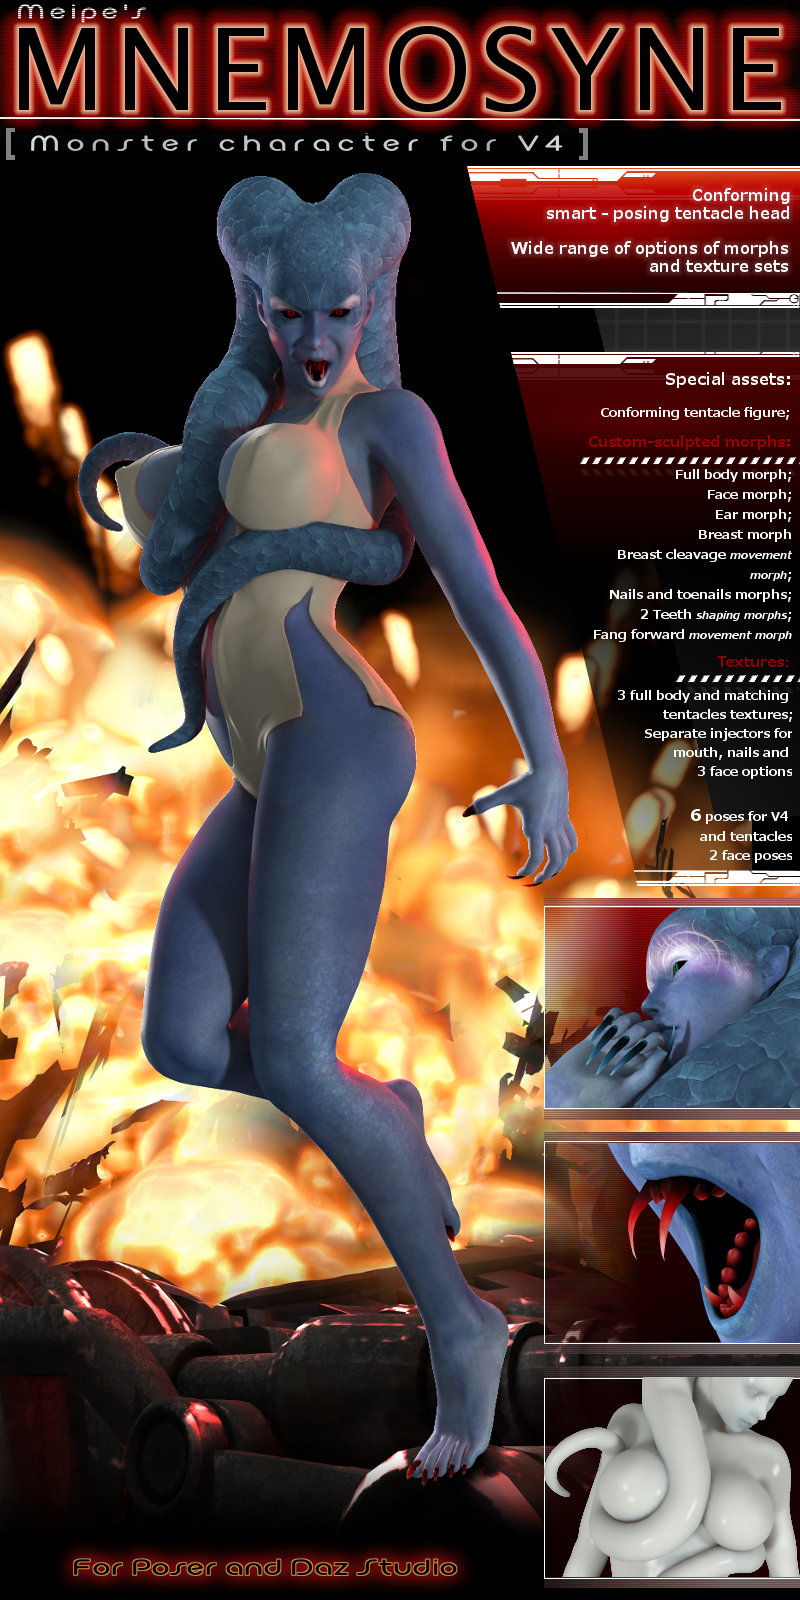 Mnemosyne - Alien character for V4 by meipe